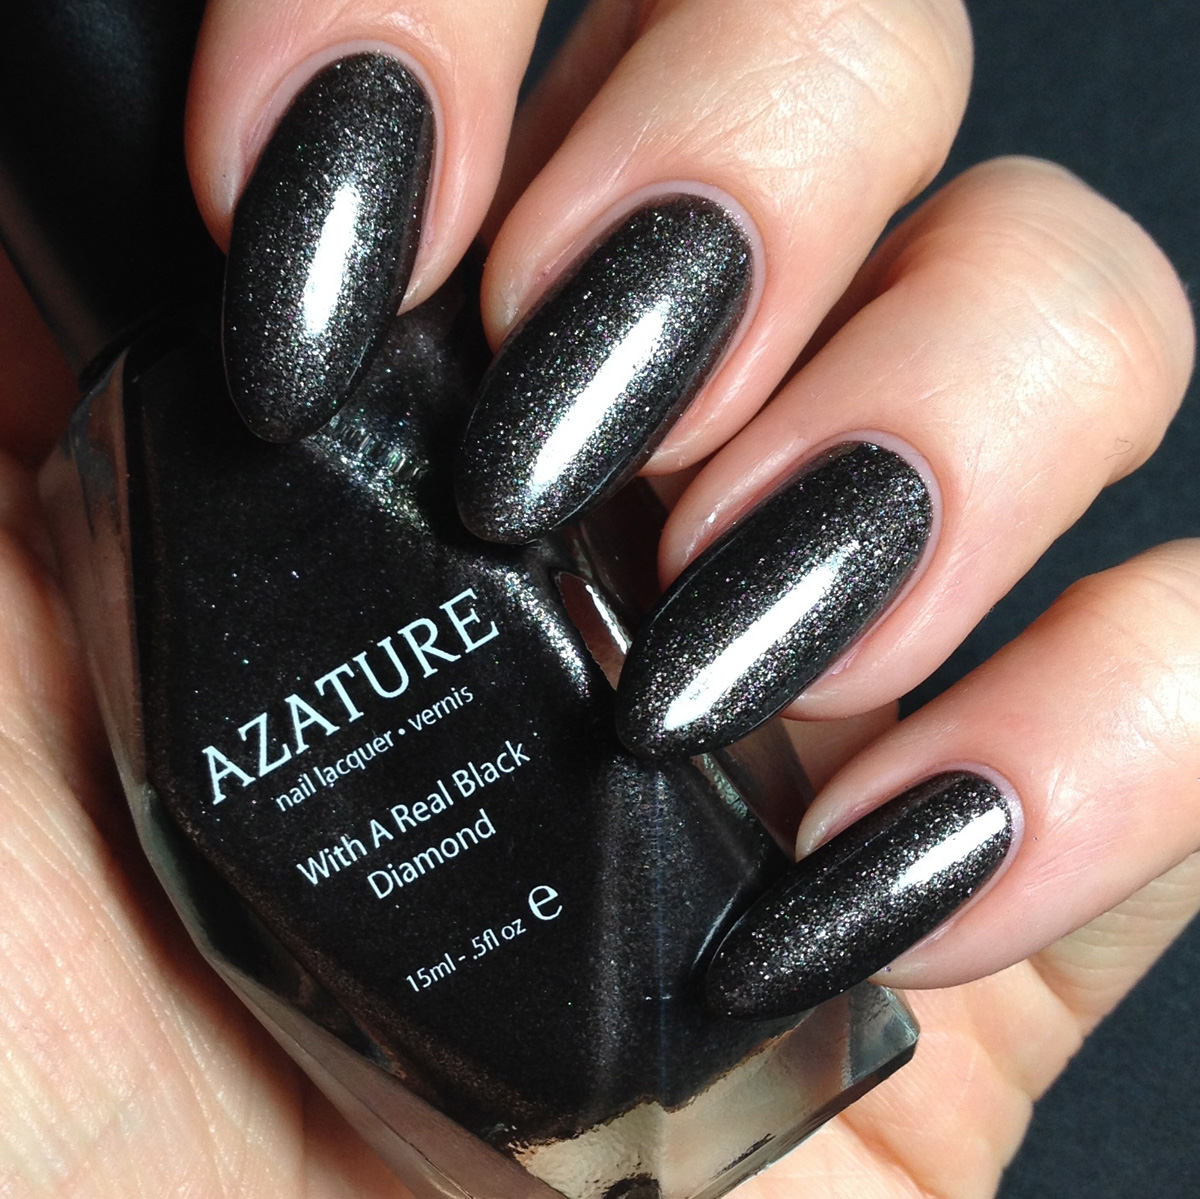 Azature Charcoal Diamond | A Z A T U R E